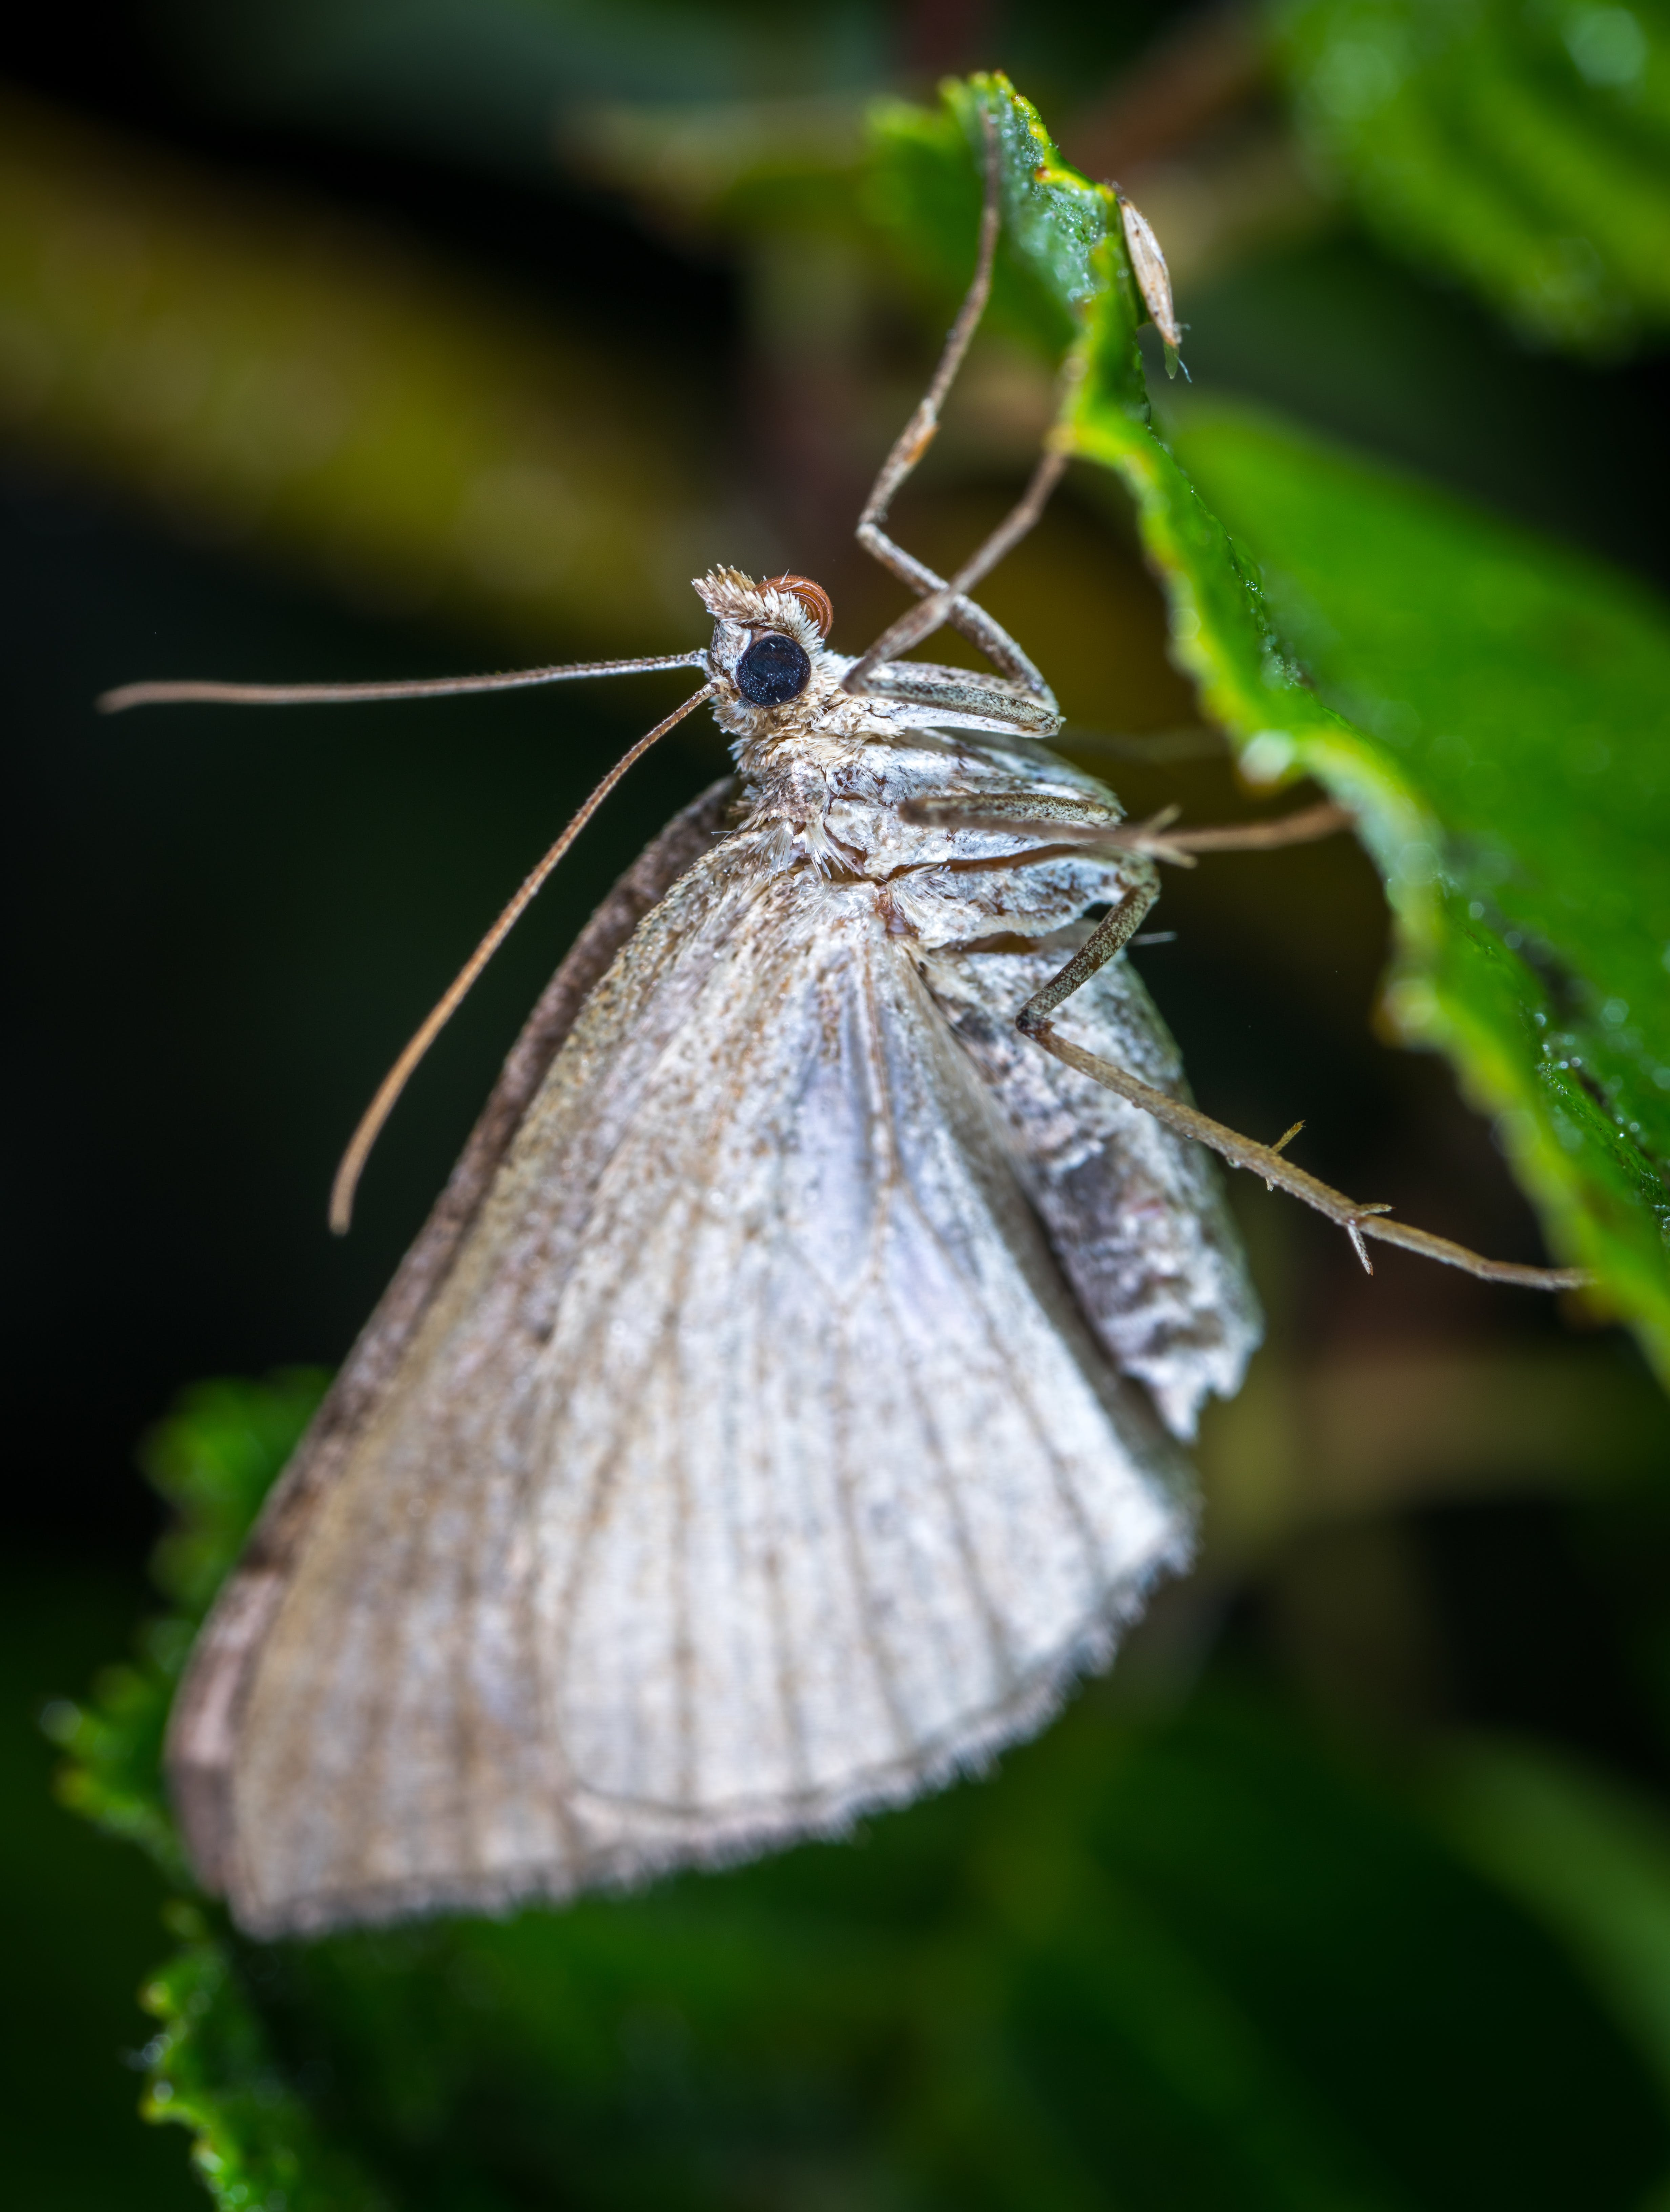 Gray Butterfly in Closeup Photo